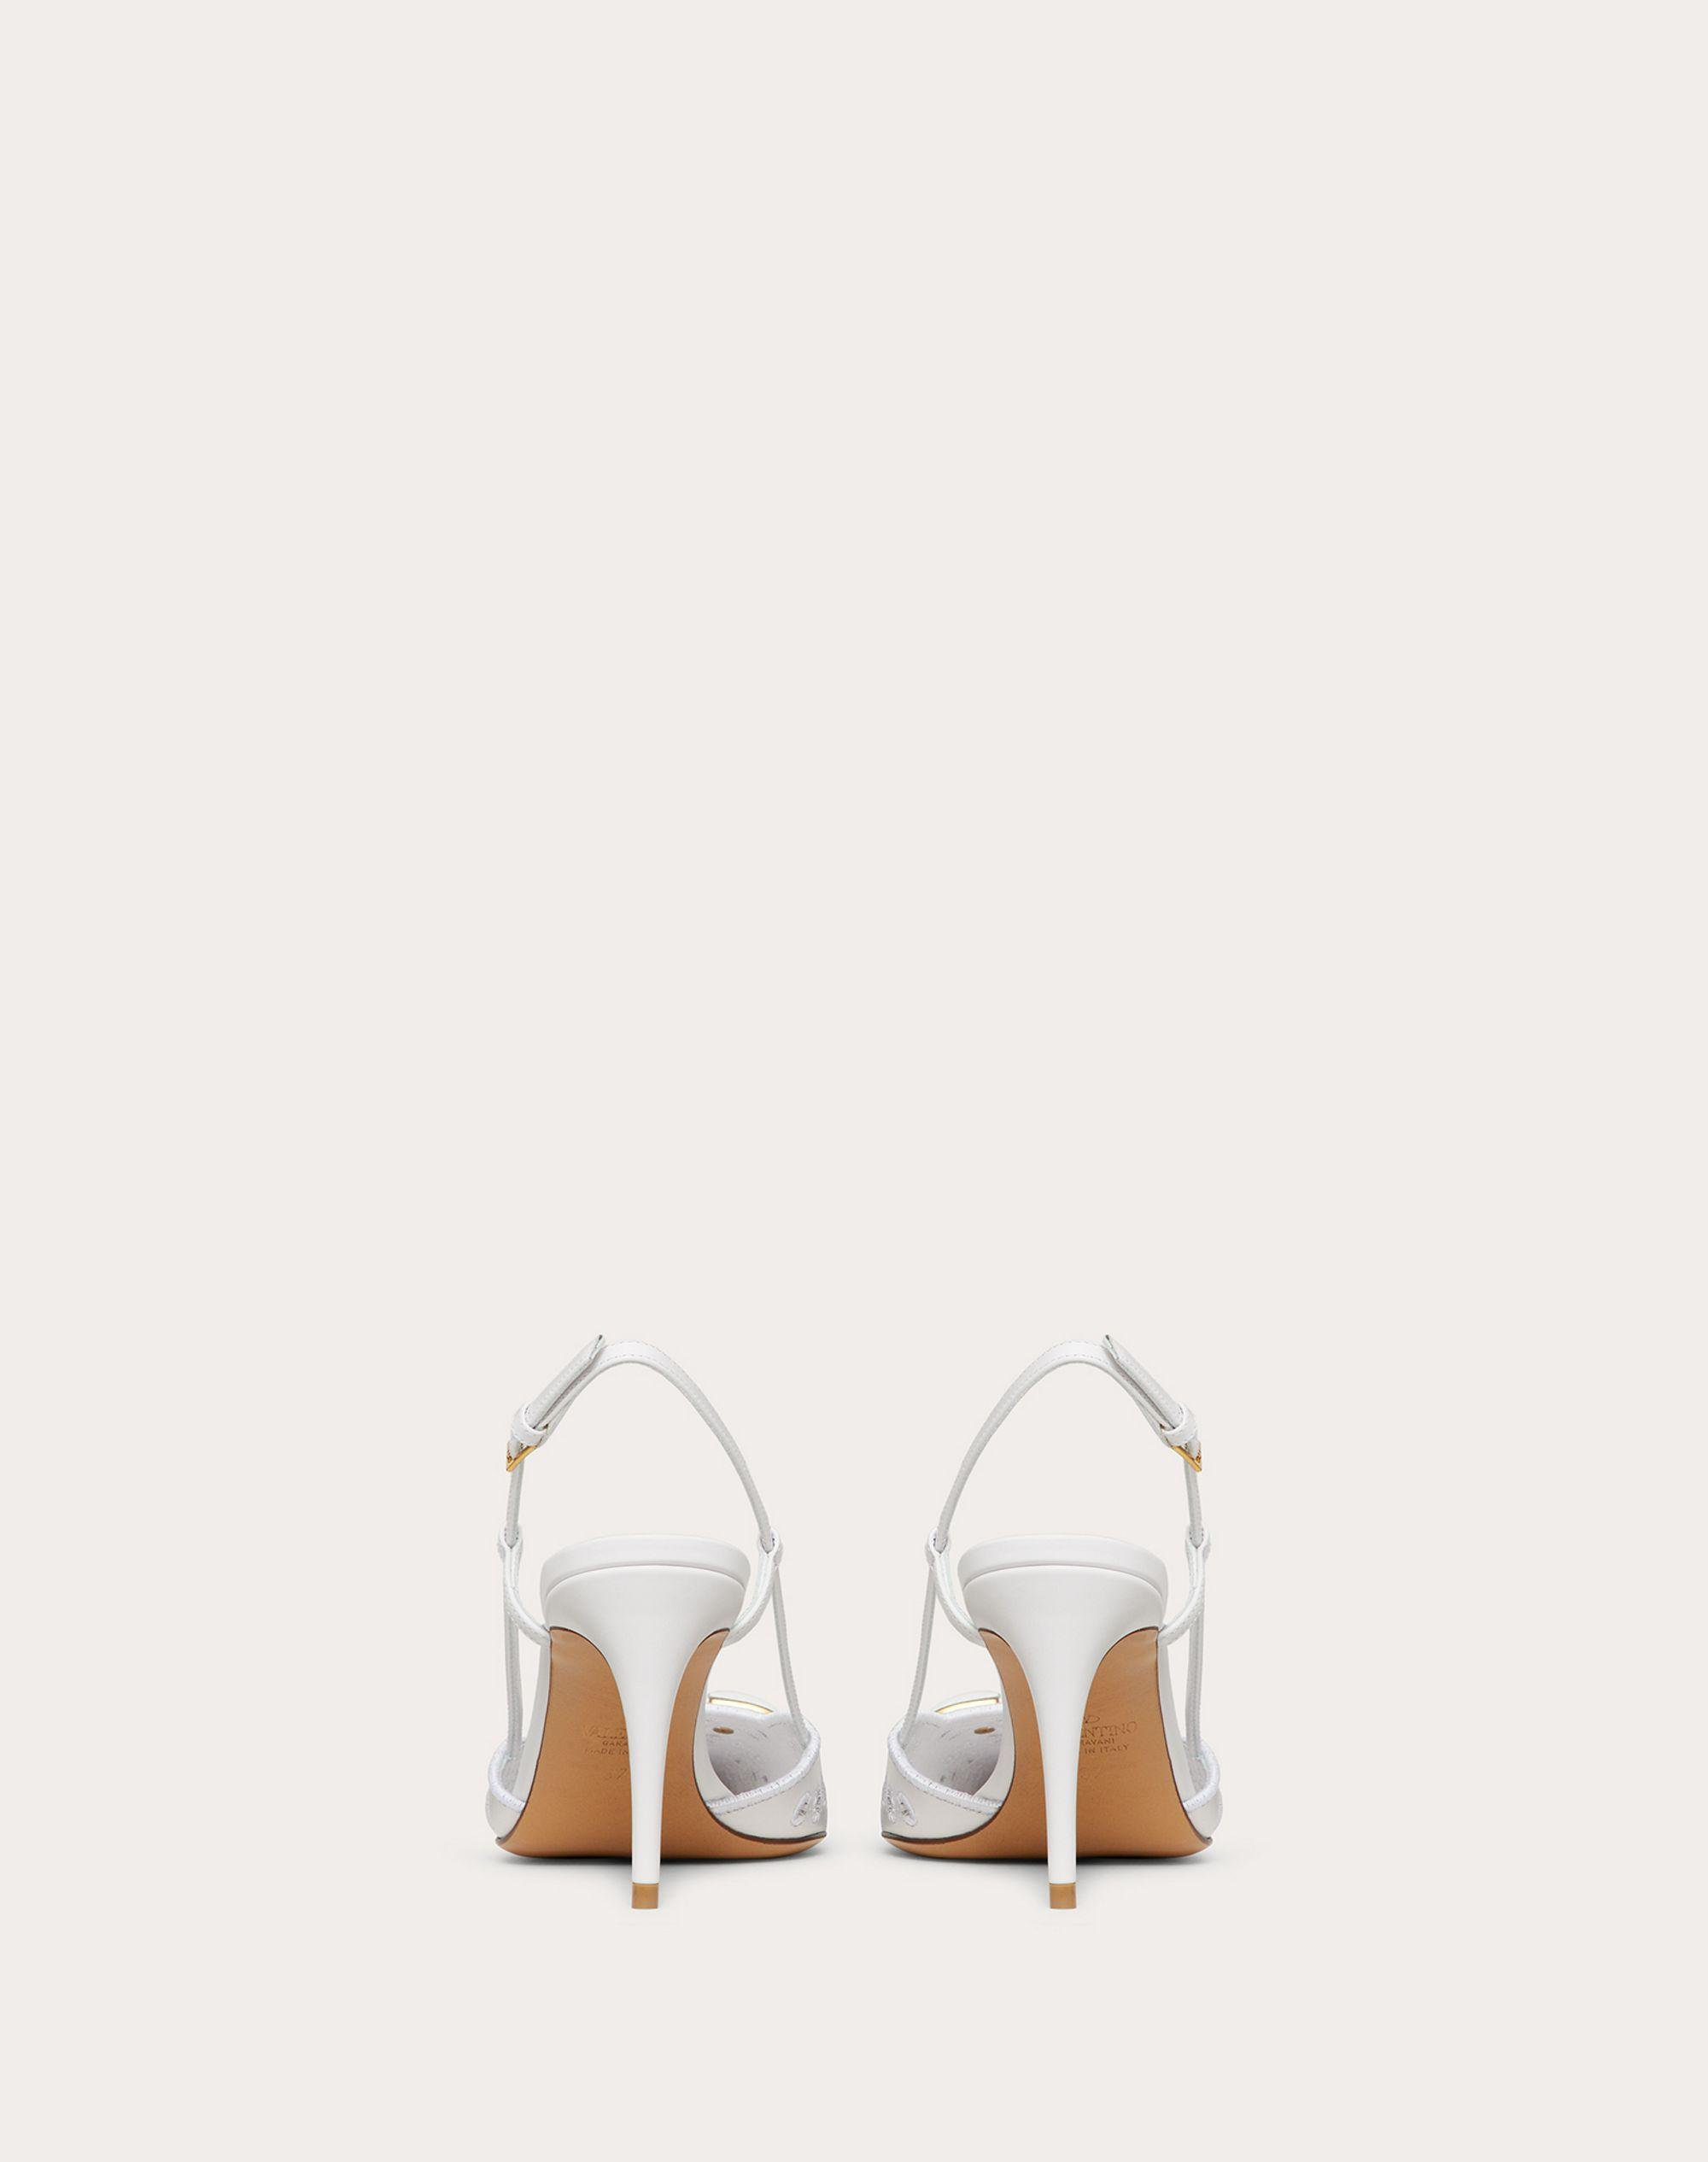 VLOGO SIGNATURE CALFSKIN SLINGBACK PUMP WITH SAN GALLO EMBROIDERY 80 MM 2